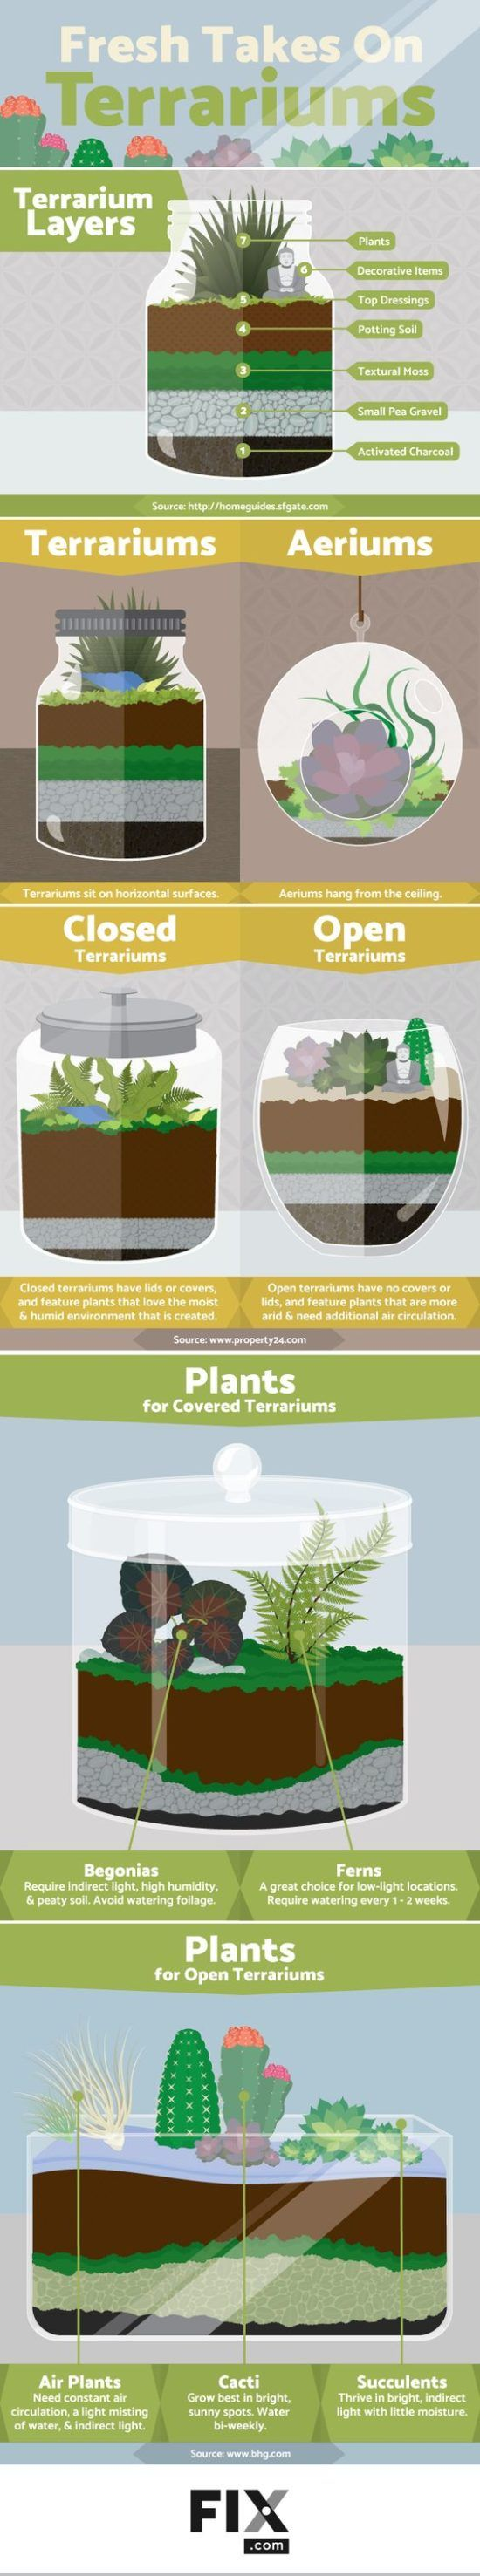 best gardening images on pinterest gardening small gardens and